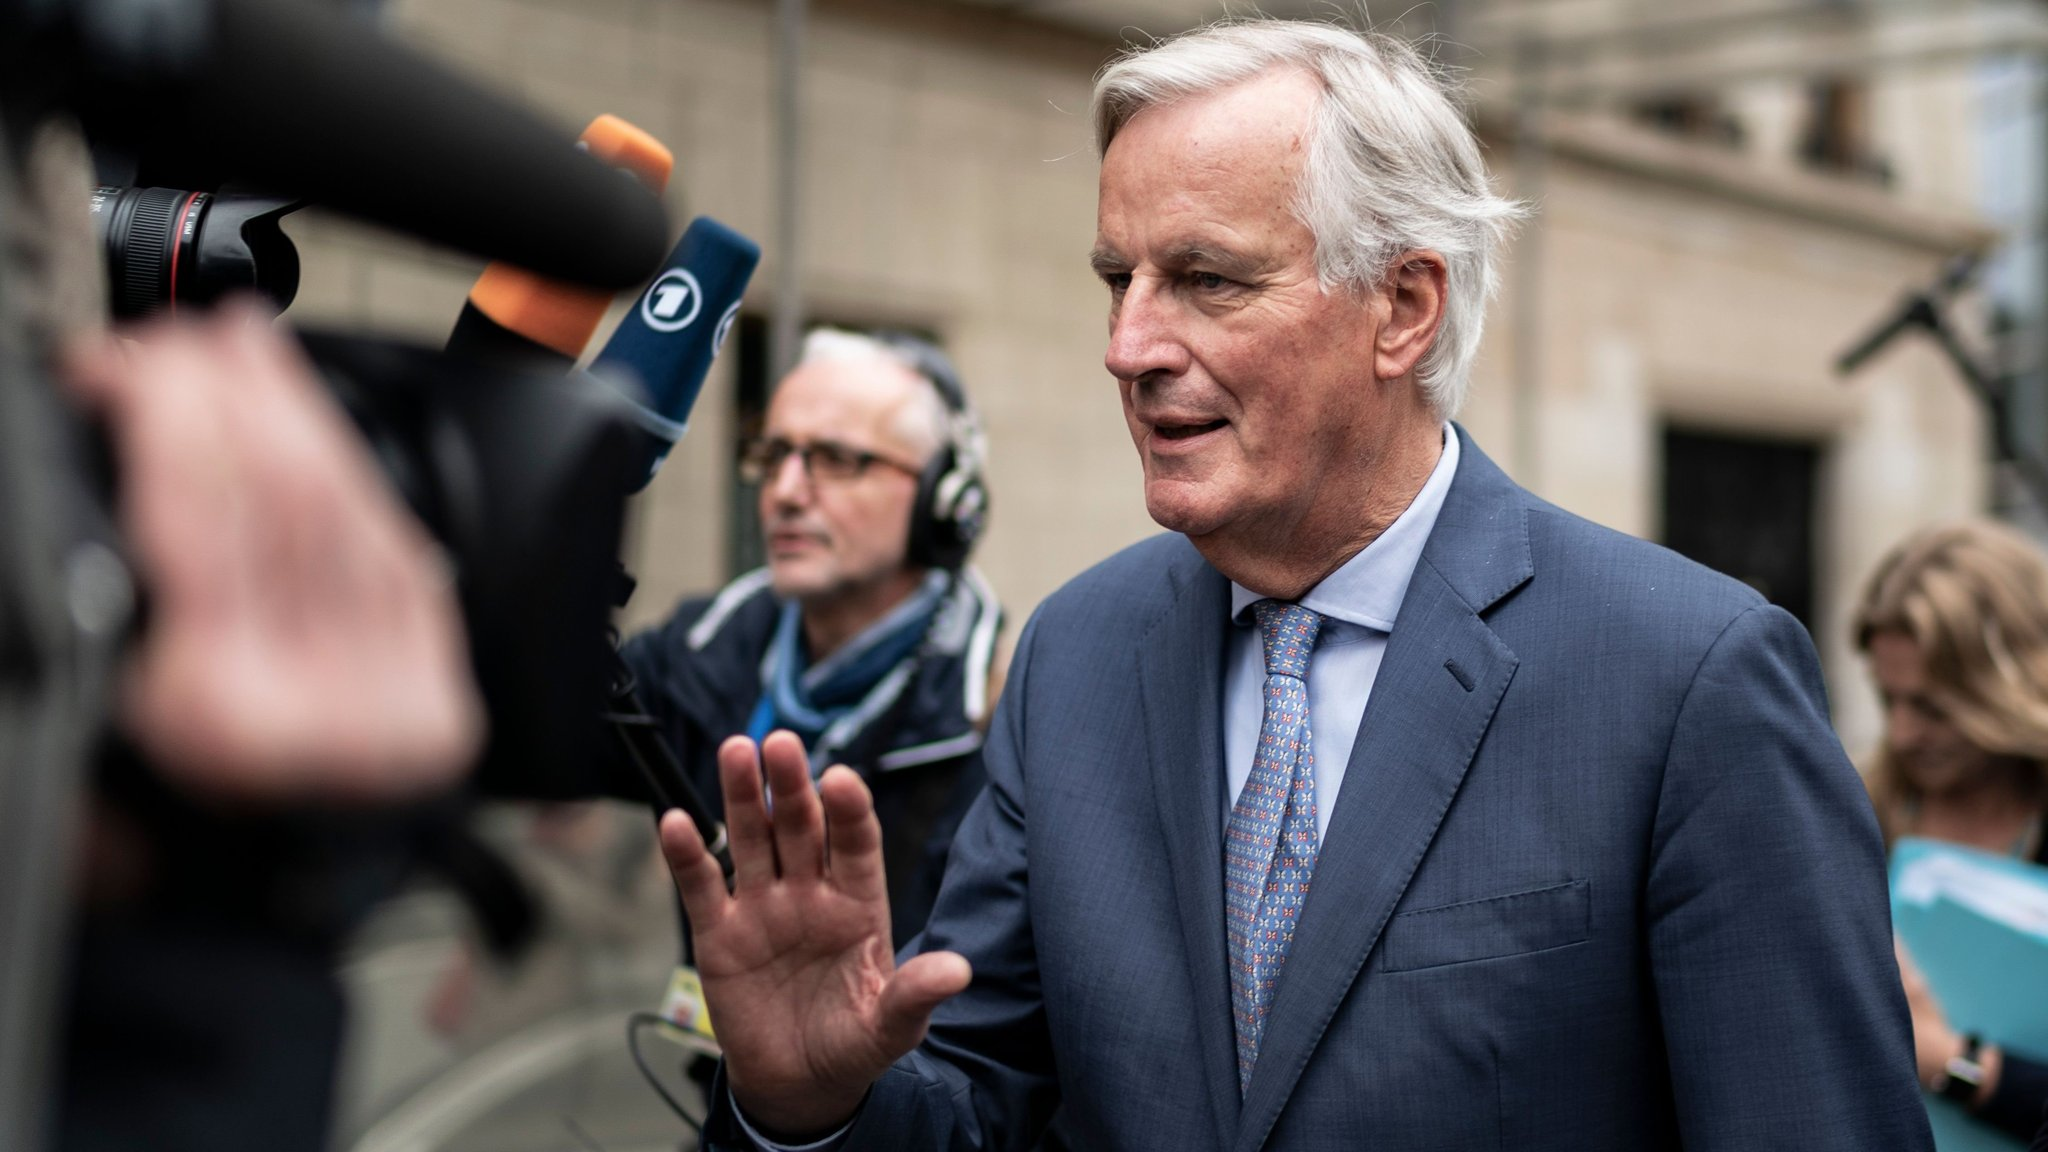 Brussels baffled by UK's 'complex' proposals to fix Brexit deadlock